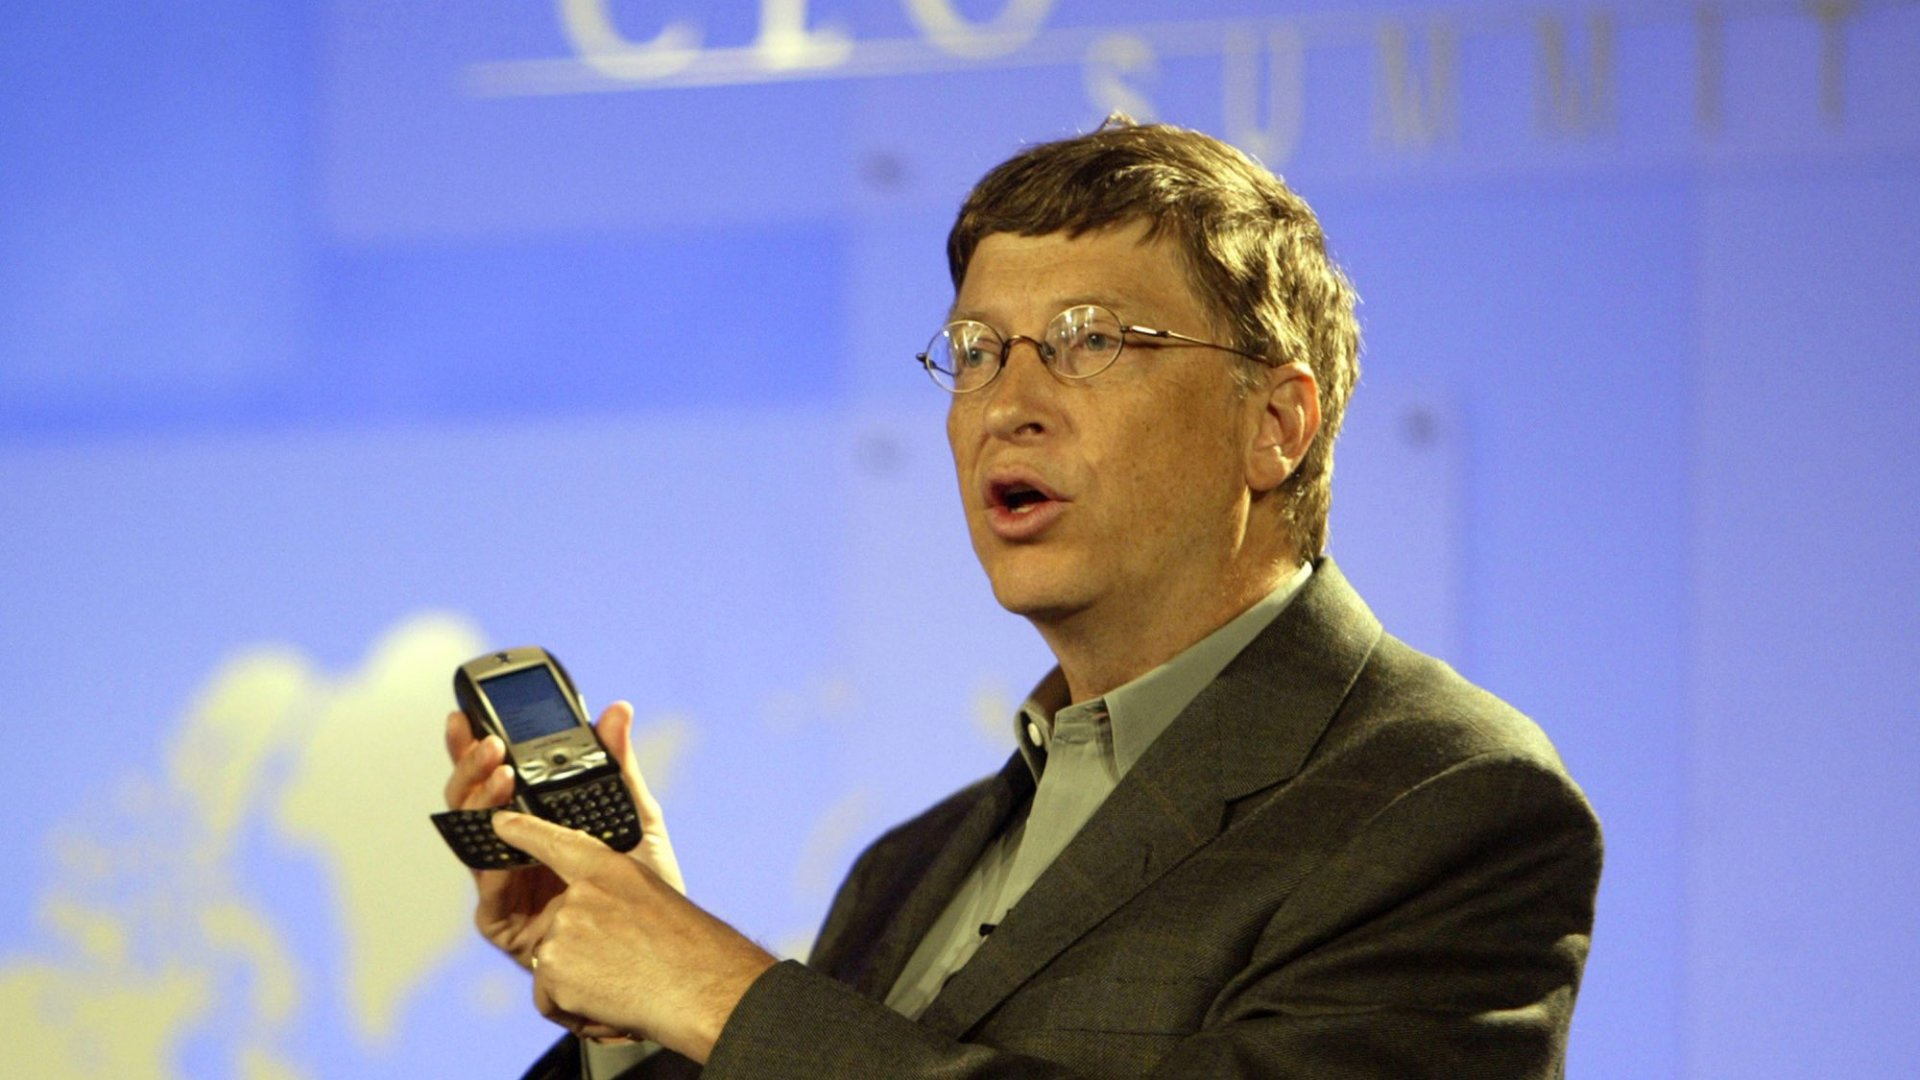 Bill Gates Says This Is the 'Safest' Age to Give a Child a Smartphone